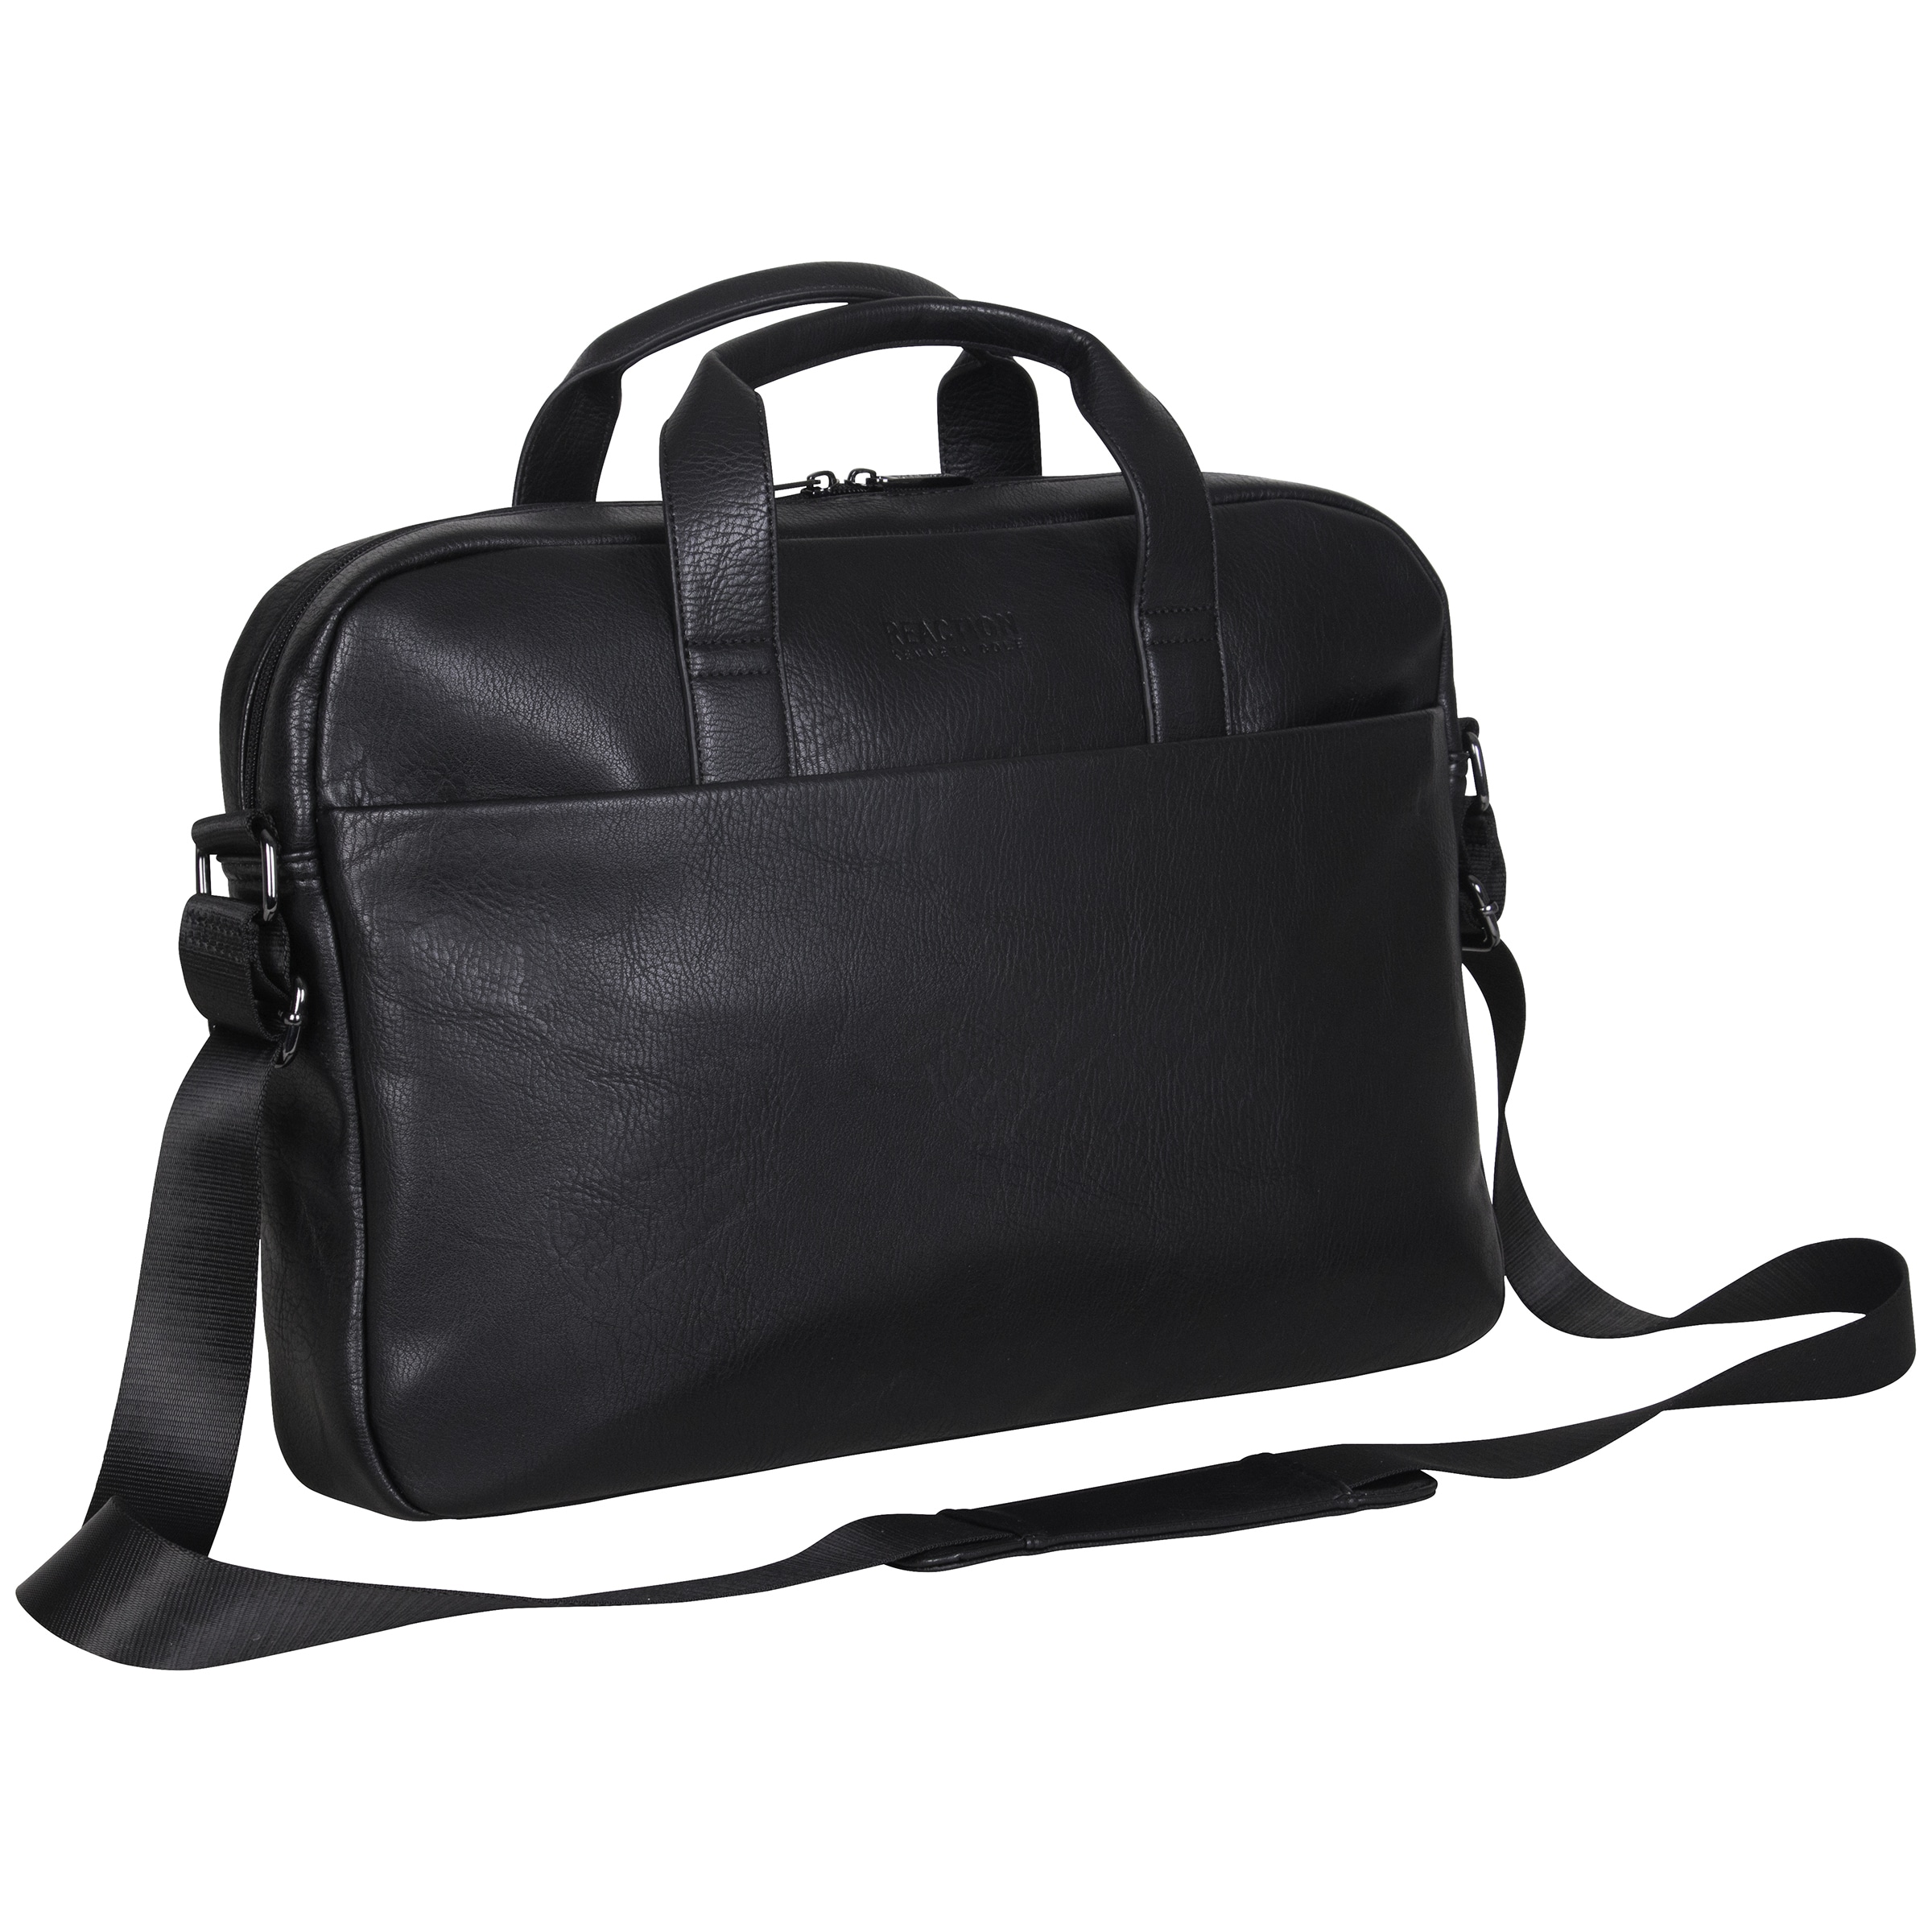 Leather Flap-Over 15-inch Laptop//Tablet Briefcase Black Solid Adjustable Strap Flapover Multi-Compartment